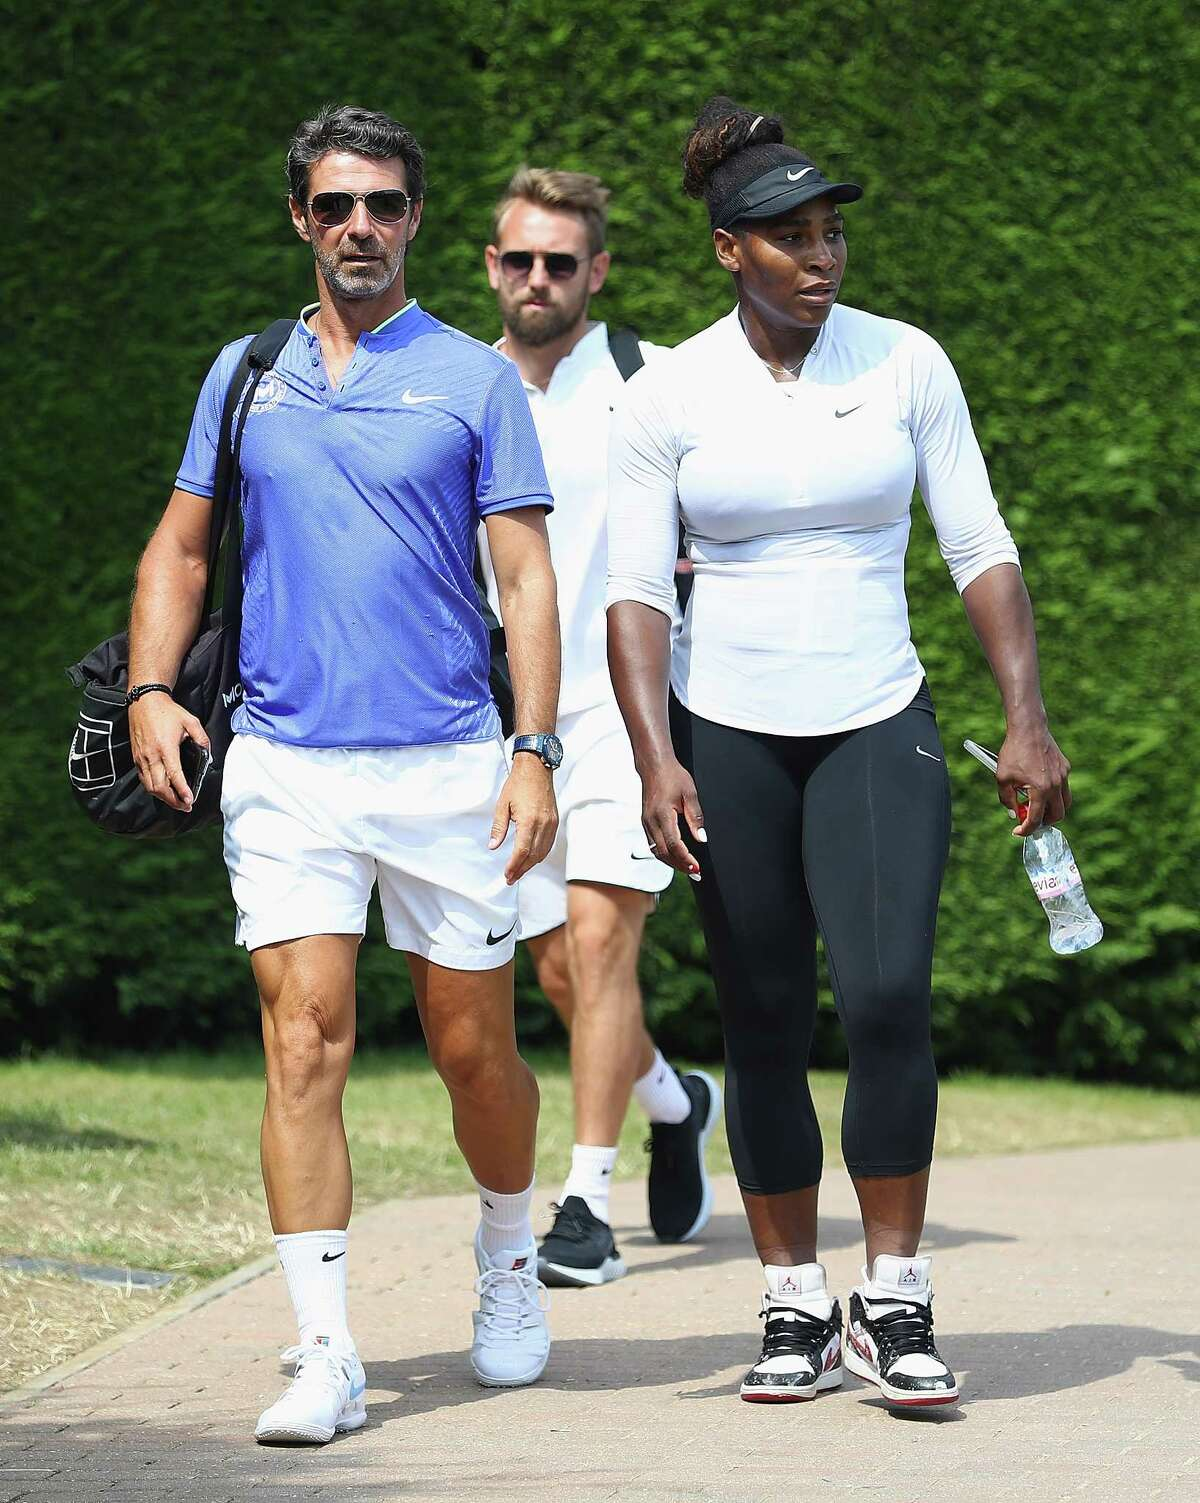 LONDON, ENGLAND - JULY 08: Serena Williams of the United States arrives for practise on the middle sunday ahead of the fourth round at All England Lawn Tennis and Croquet Club on July 8, 2018 in London, England. (Photo by Matthew Lewis/Getty Images)